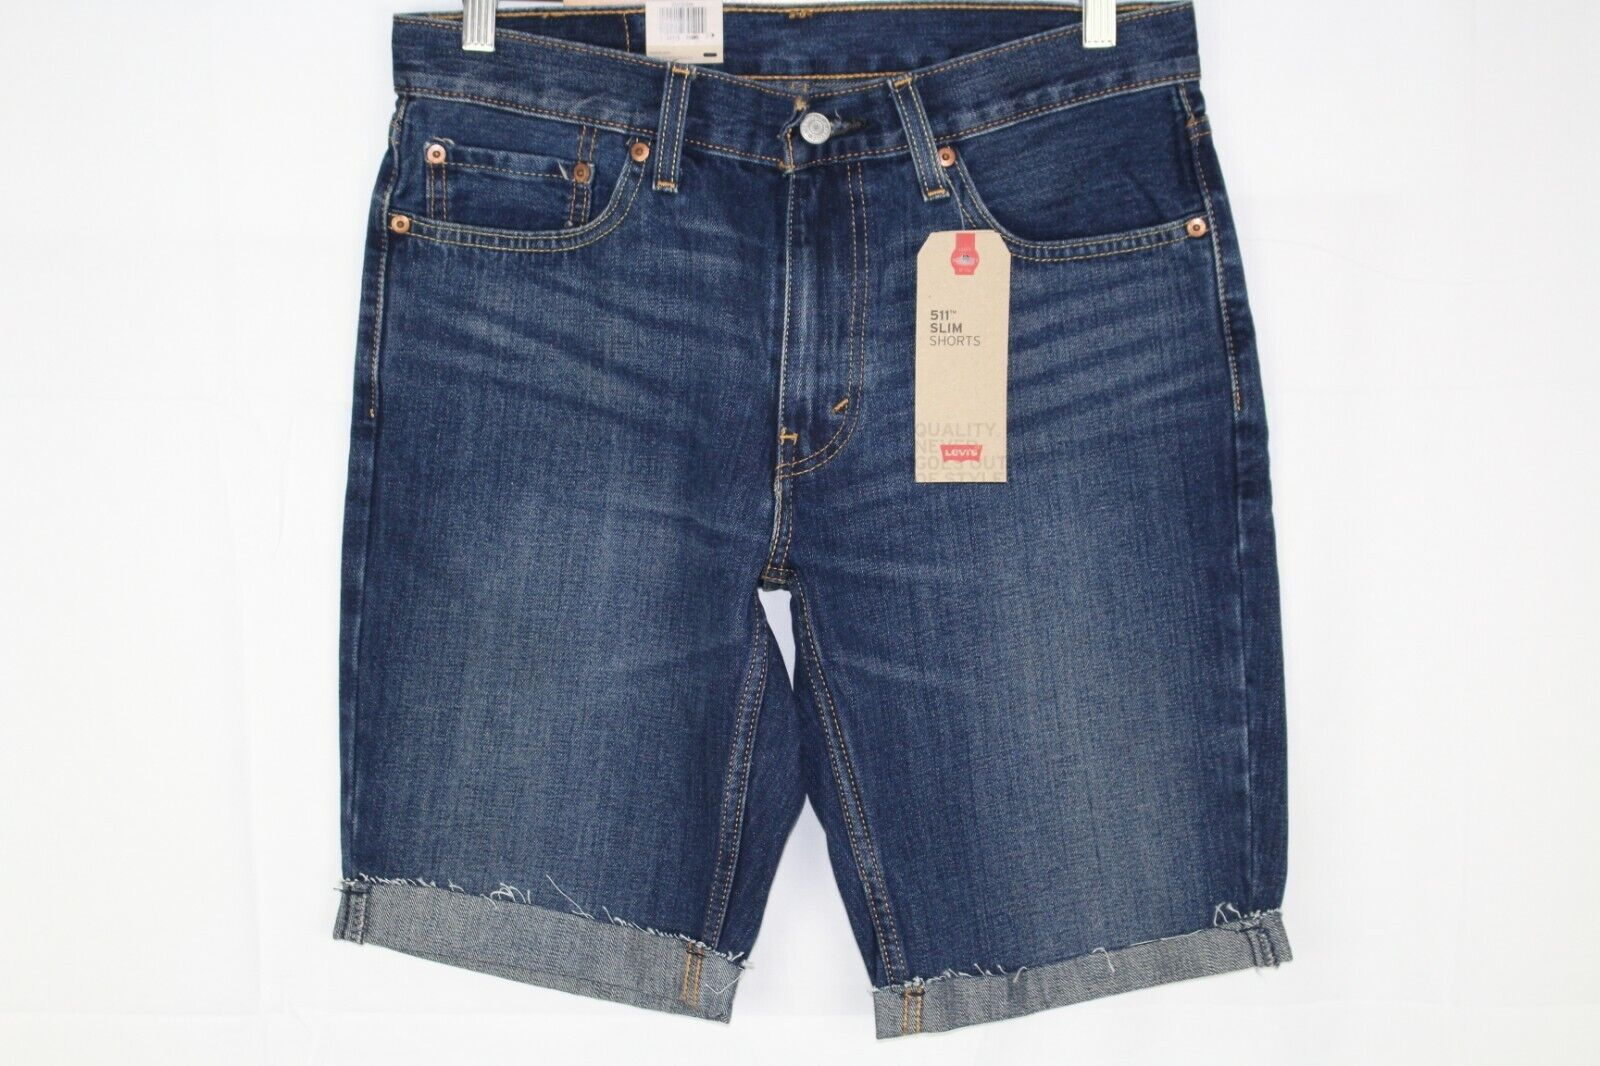 Levi's Men's 511 Slim Cut Off Shorts On The Roof 365550209